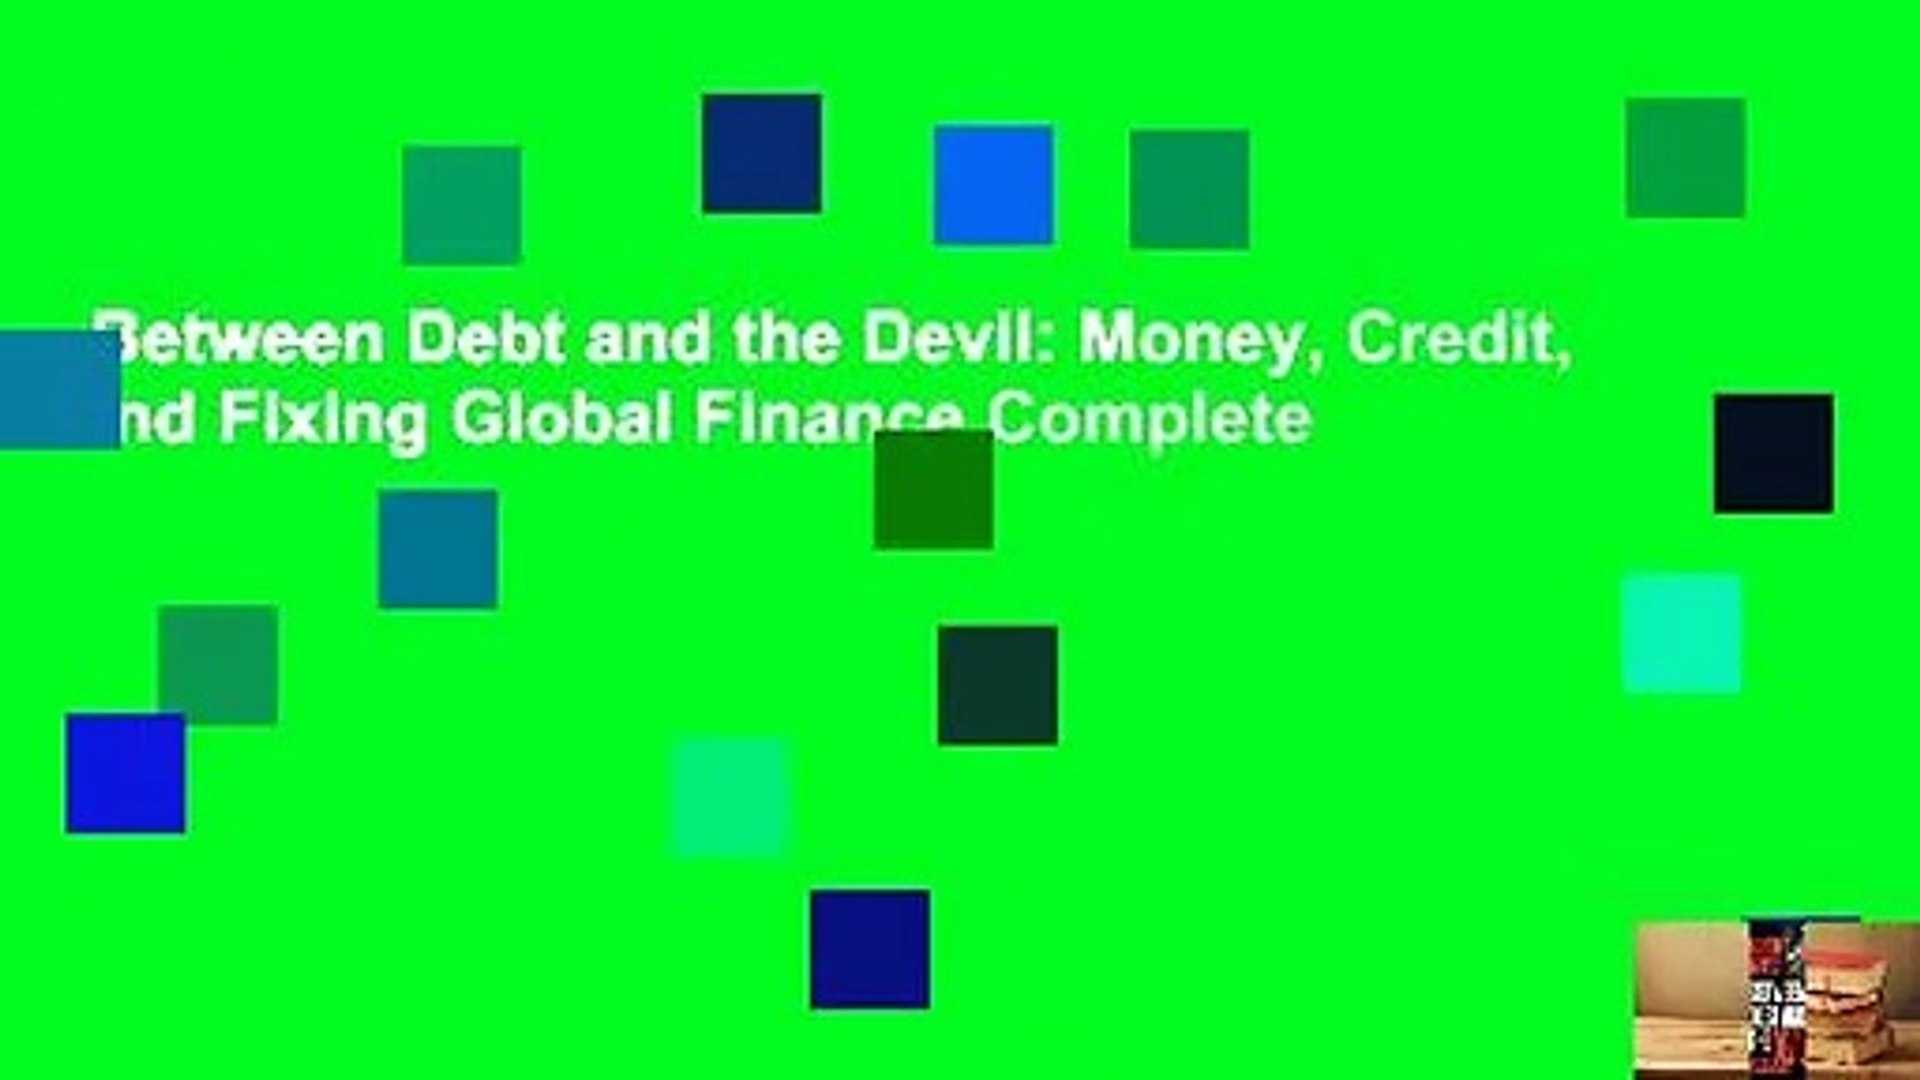 Money Credit and Fixing Global Finance Between Debt and the Devil